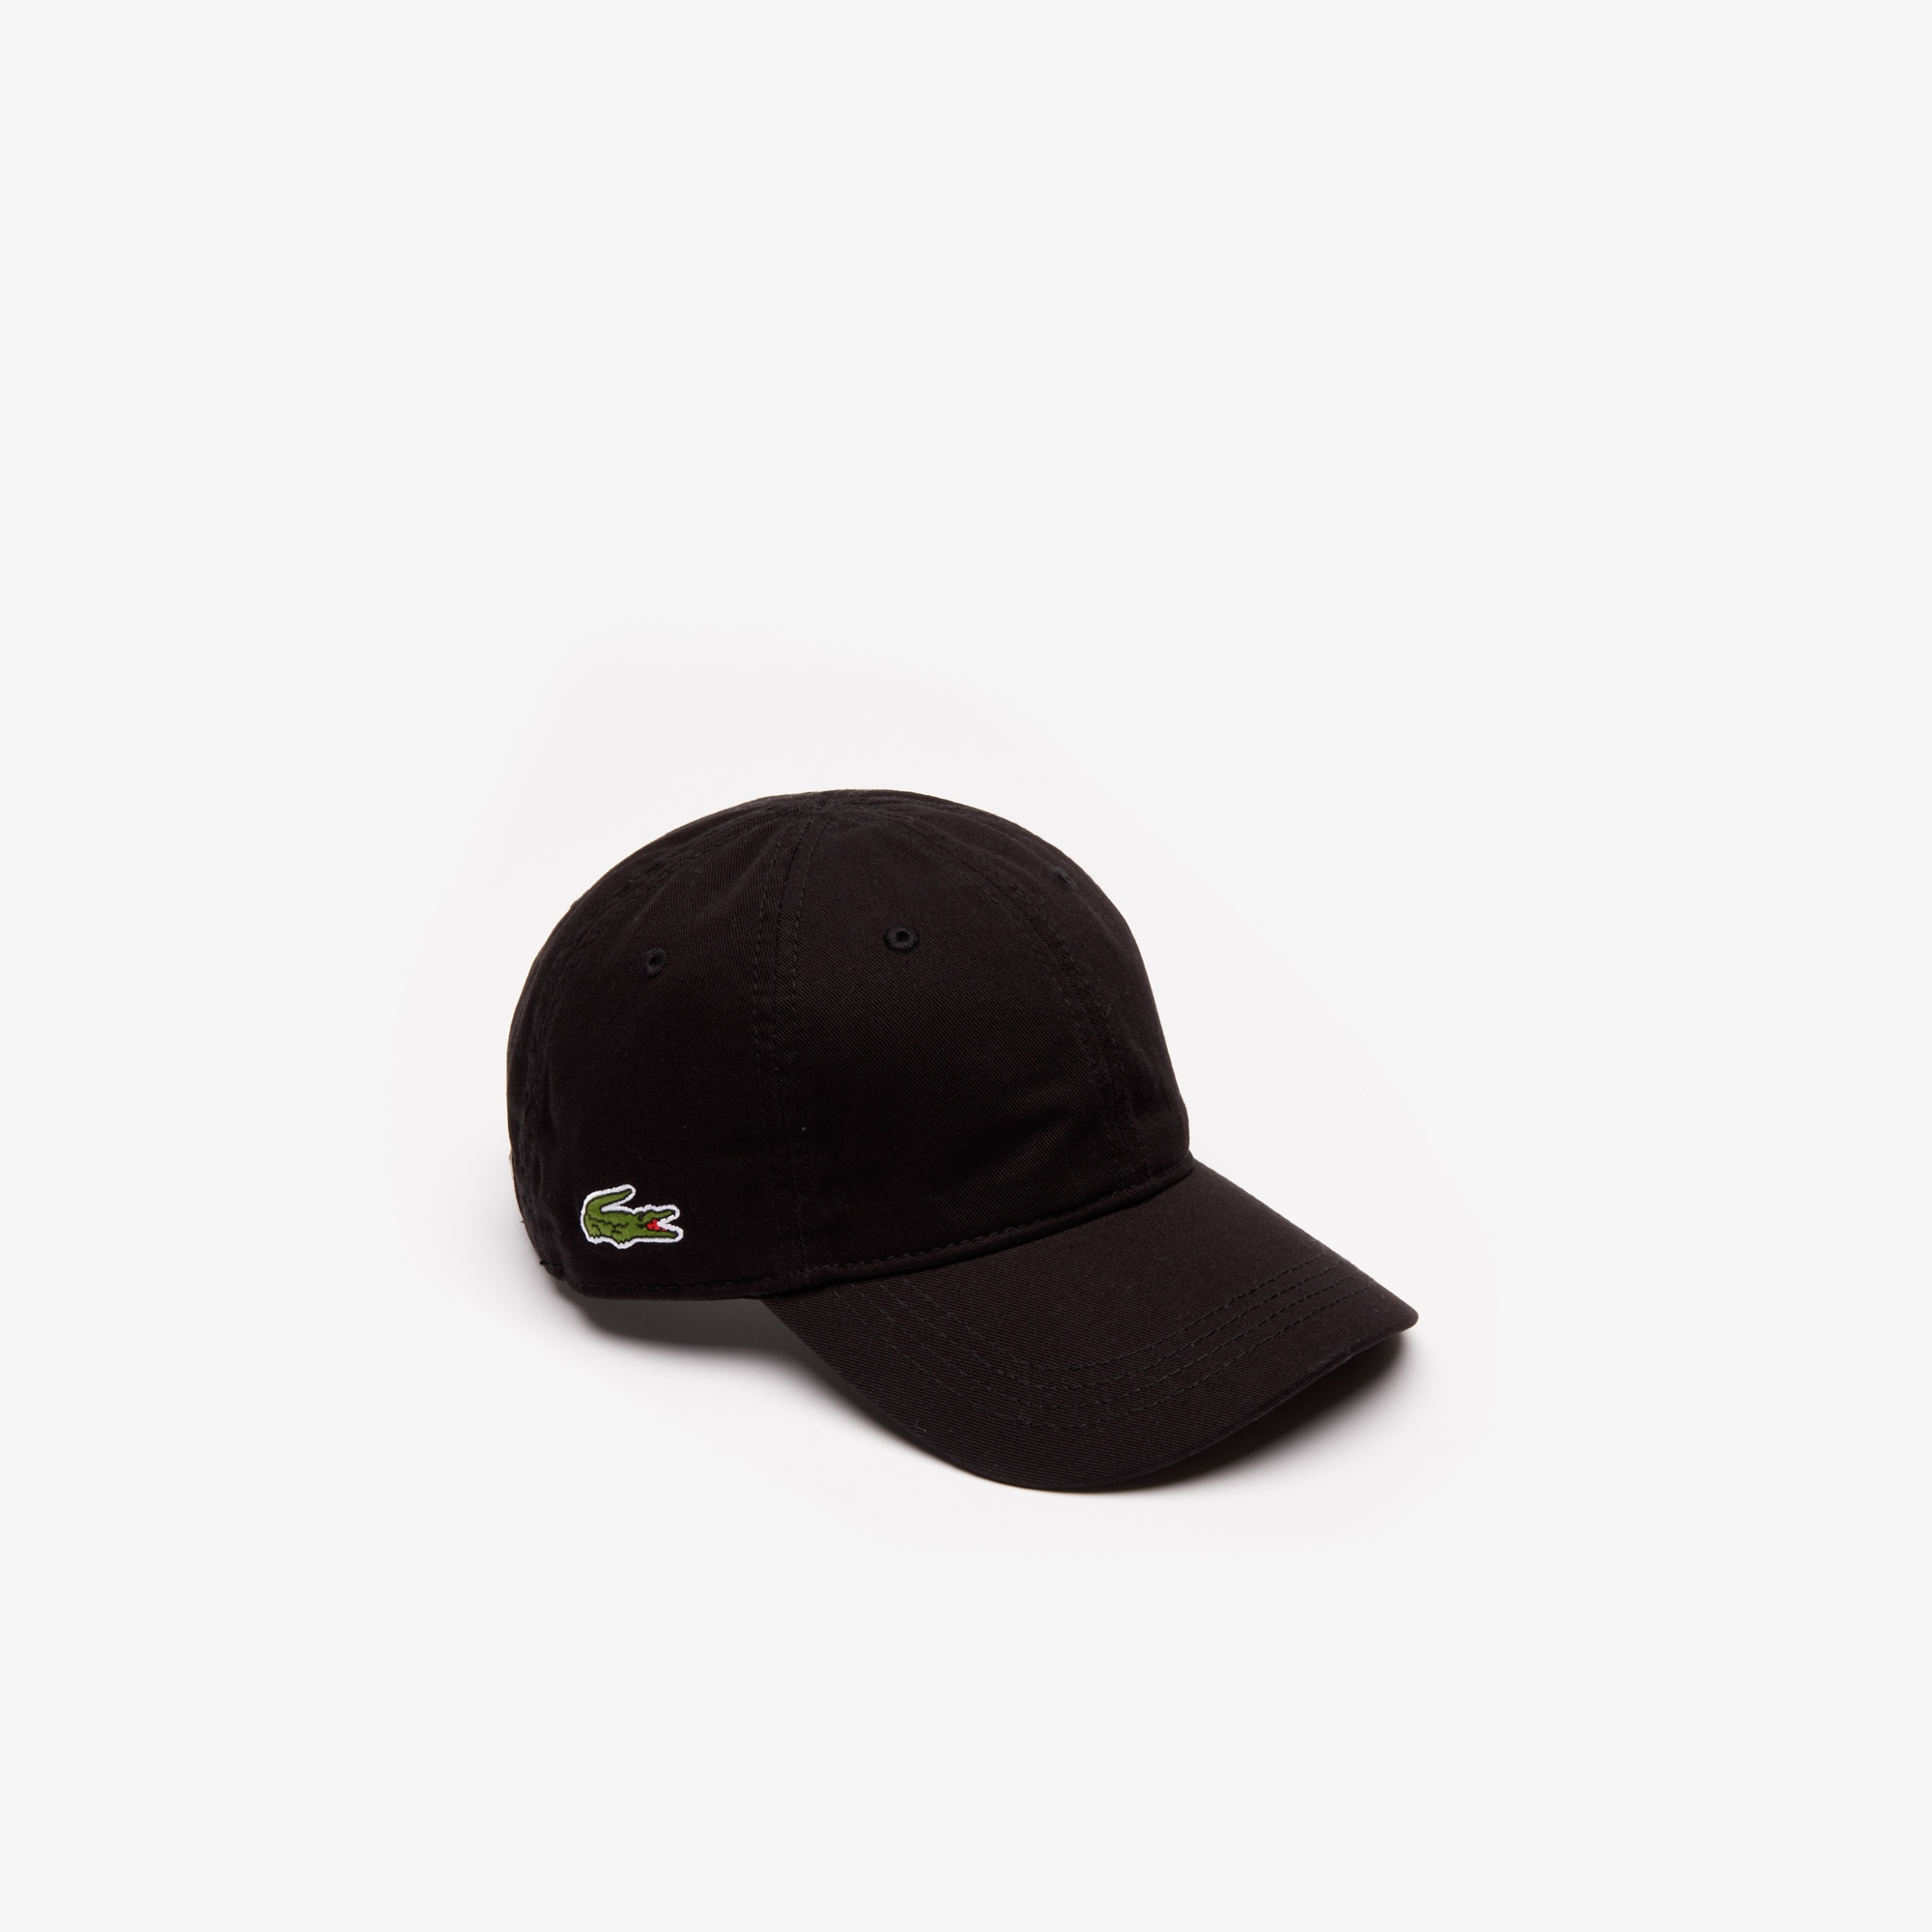 52b7c36f Men's Caps and Hats | Men's Accessories | LACOSTE